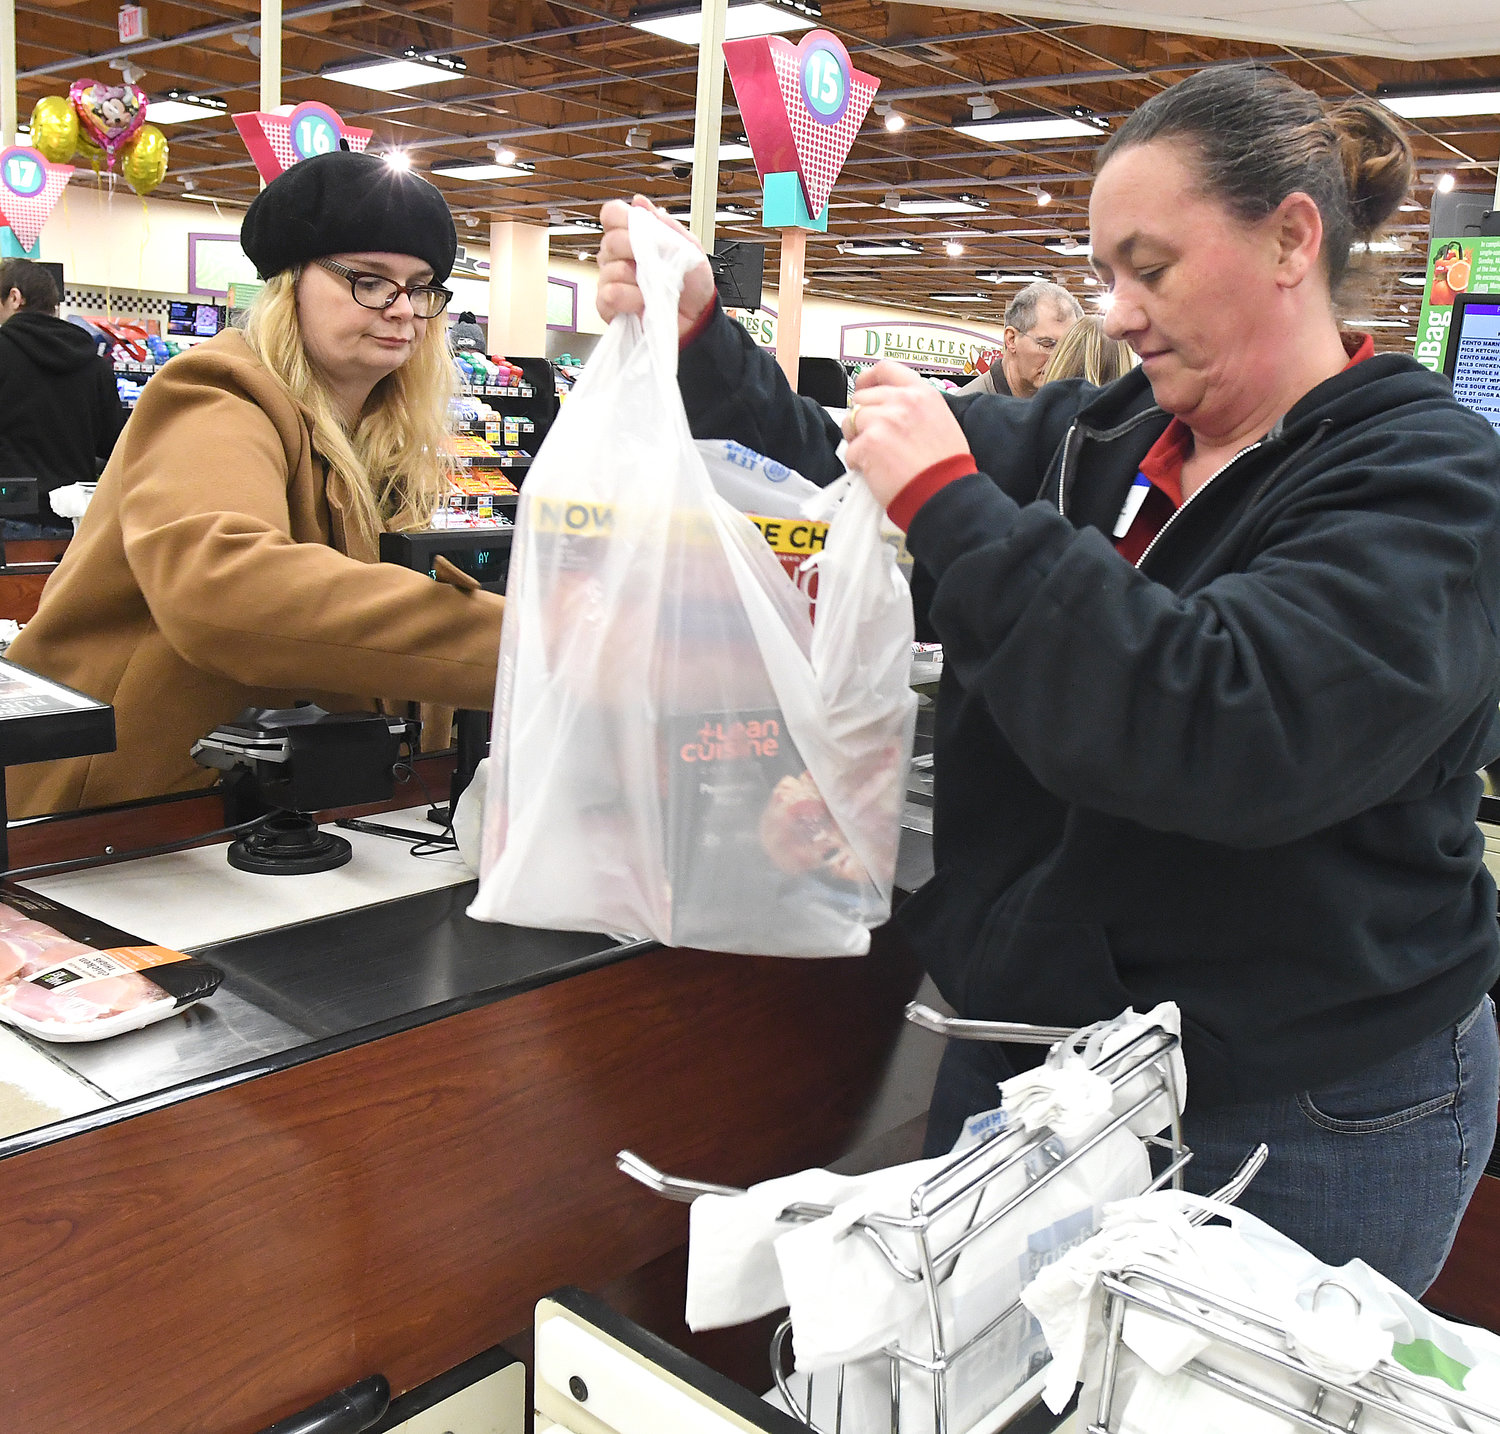 "LAST BAGS — Price Chopper employee Charlene Whaley uses store plastic bags for customer Holland Saenger. When asked what she would be doing for bags Saenger laughed and said, ""Stop shopping."" And then, ""I'll figure it out."" Whaley has been a Price Chopper employee for two weeks. She said a customer from Germany recently noted that back home, she normally carried her own container for grocery shopping."